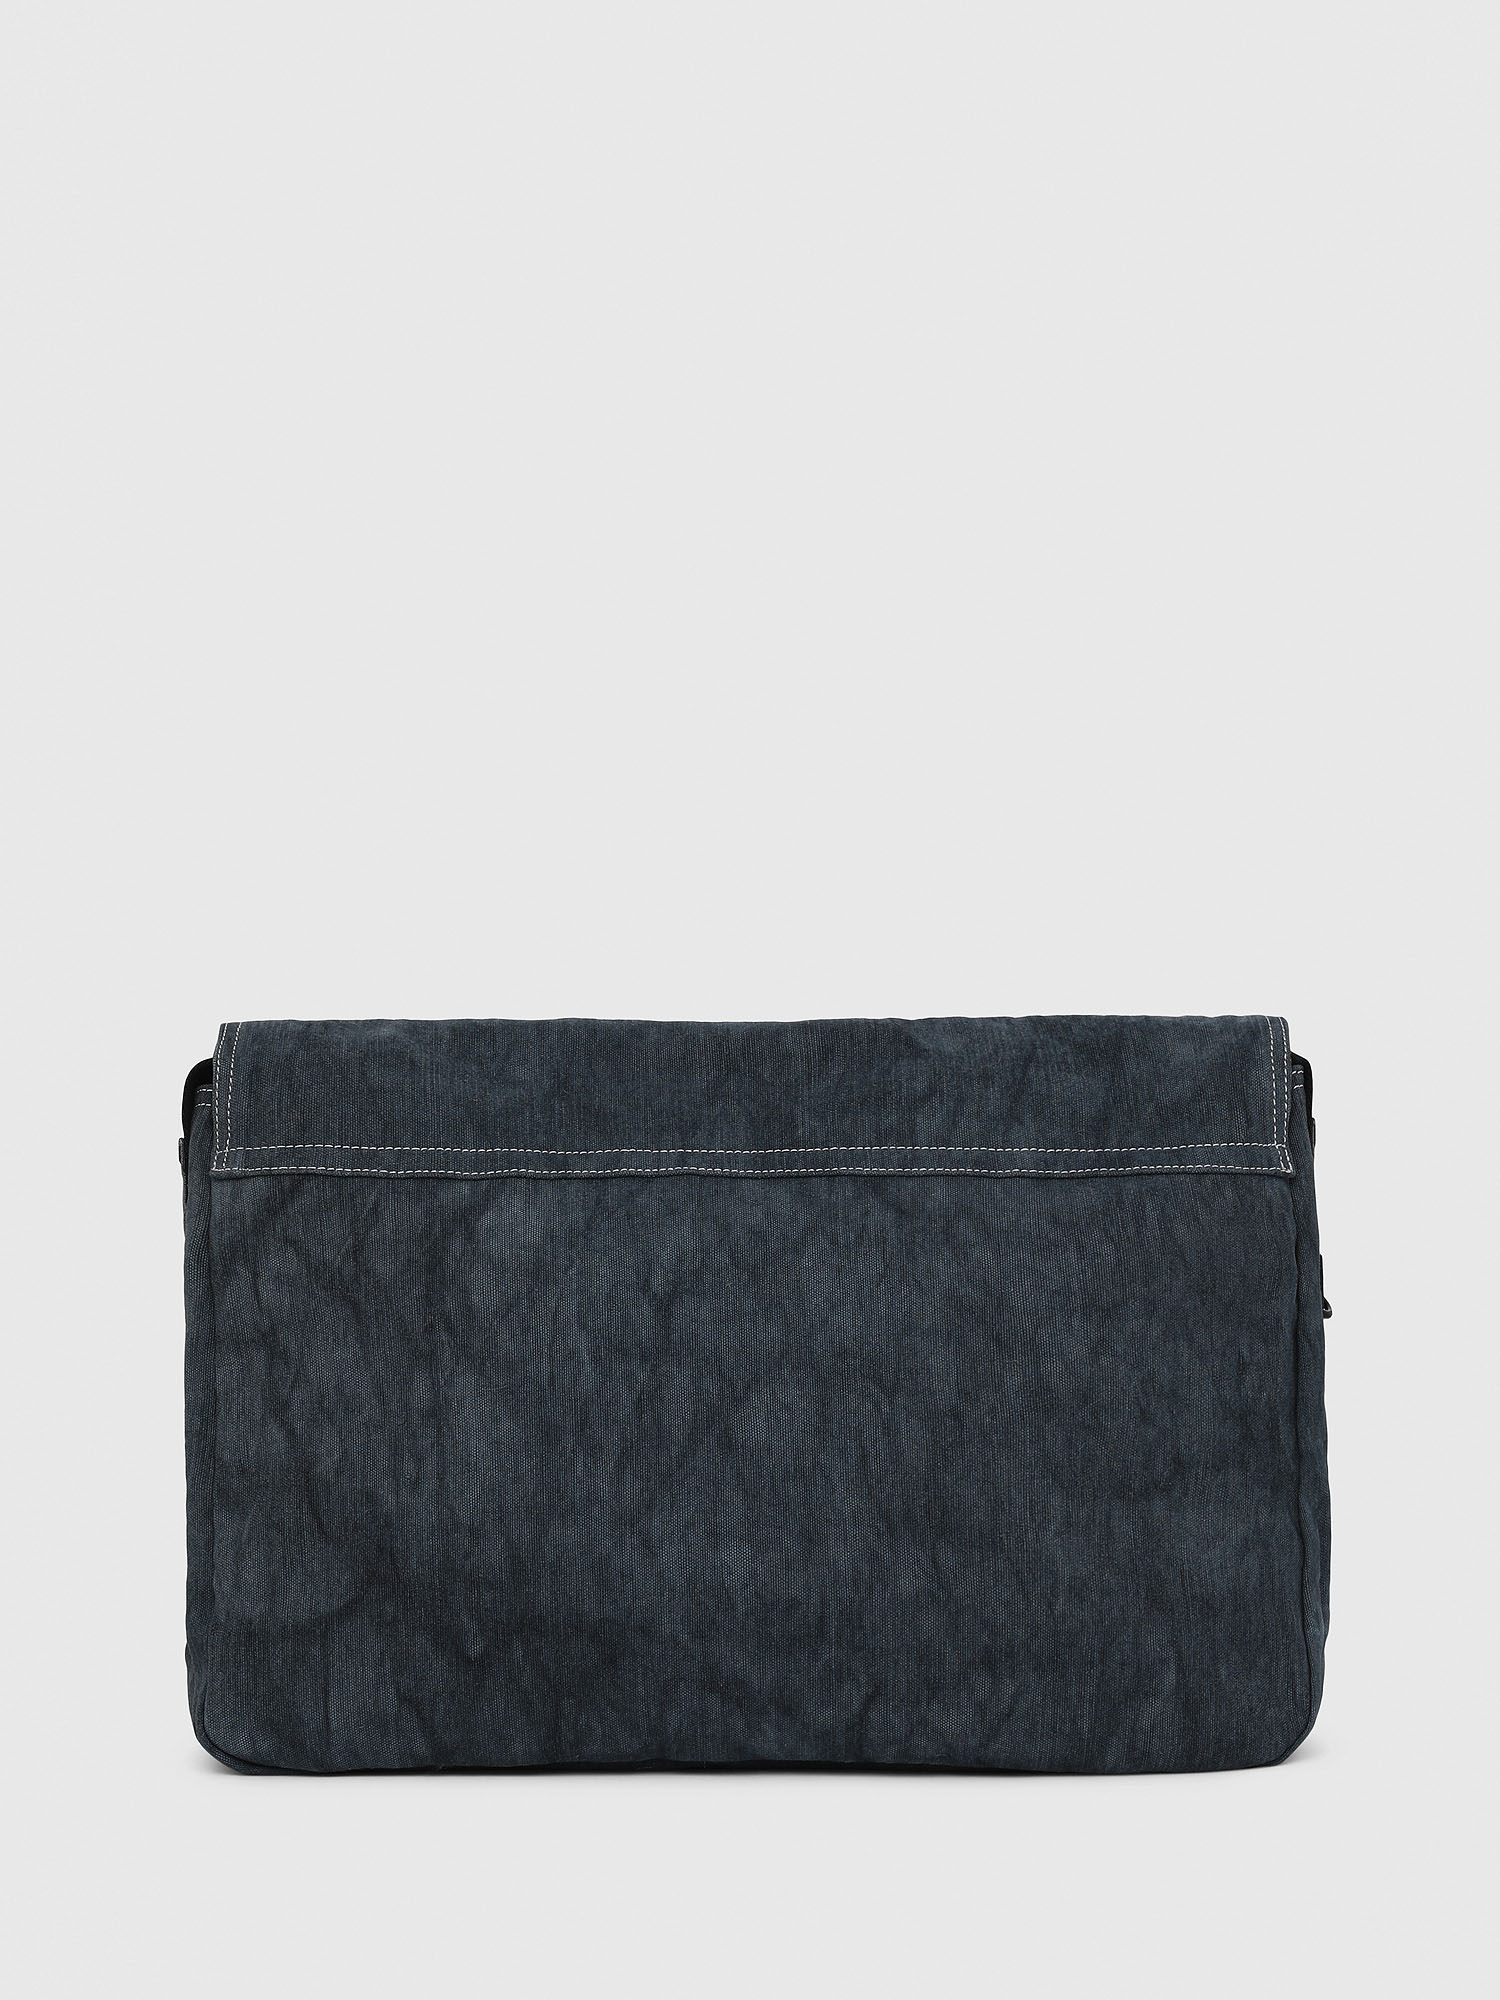 Diesel - D-THISBAG MESSENGER,  - Crossbody Bags - Image 2